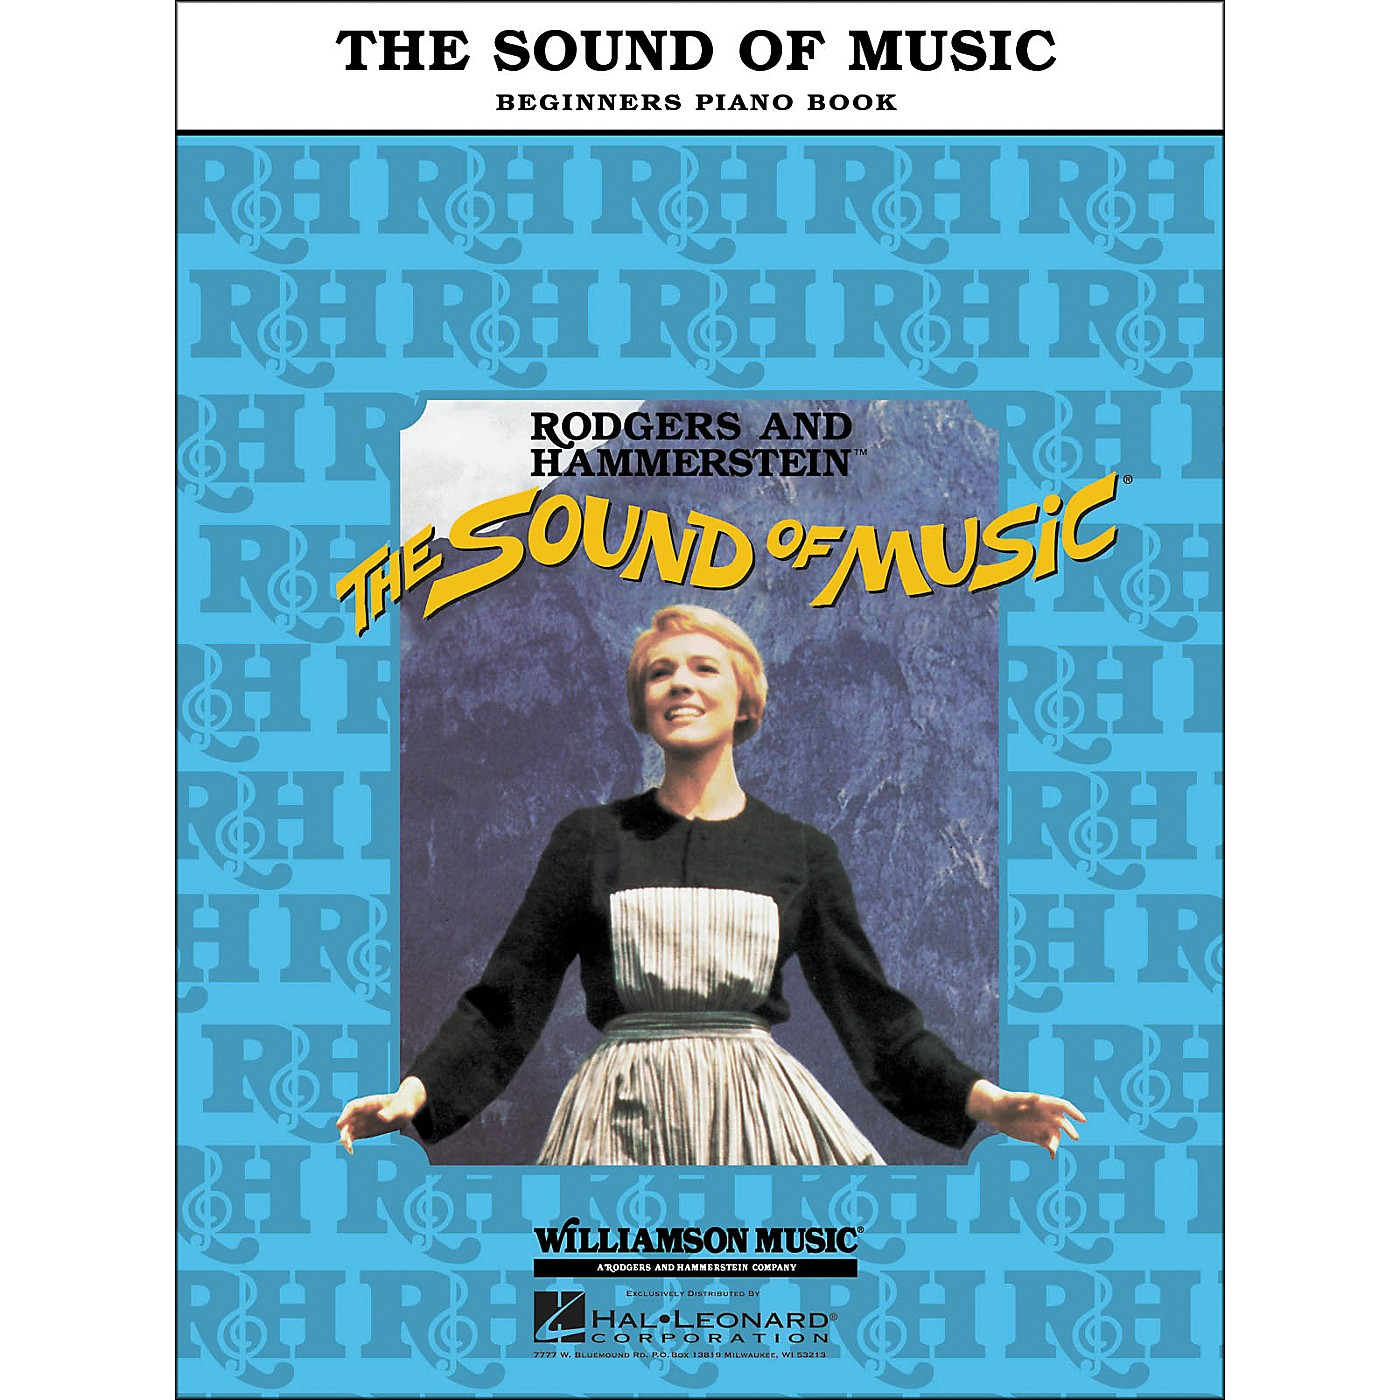 Hal Leonard The Sound Of Music Beginner's Piano Book for Easy Piano thumbnail